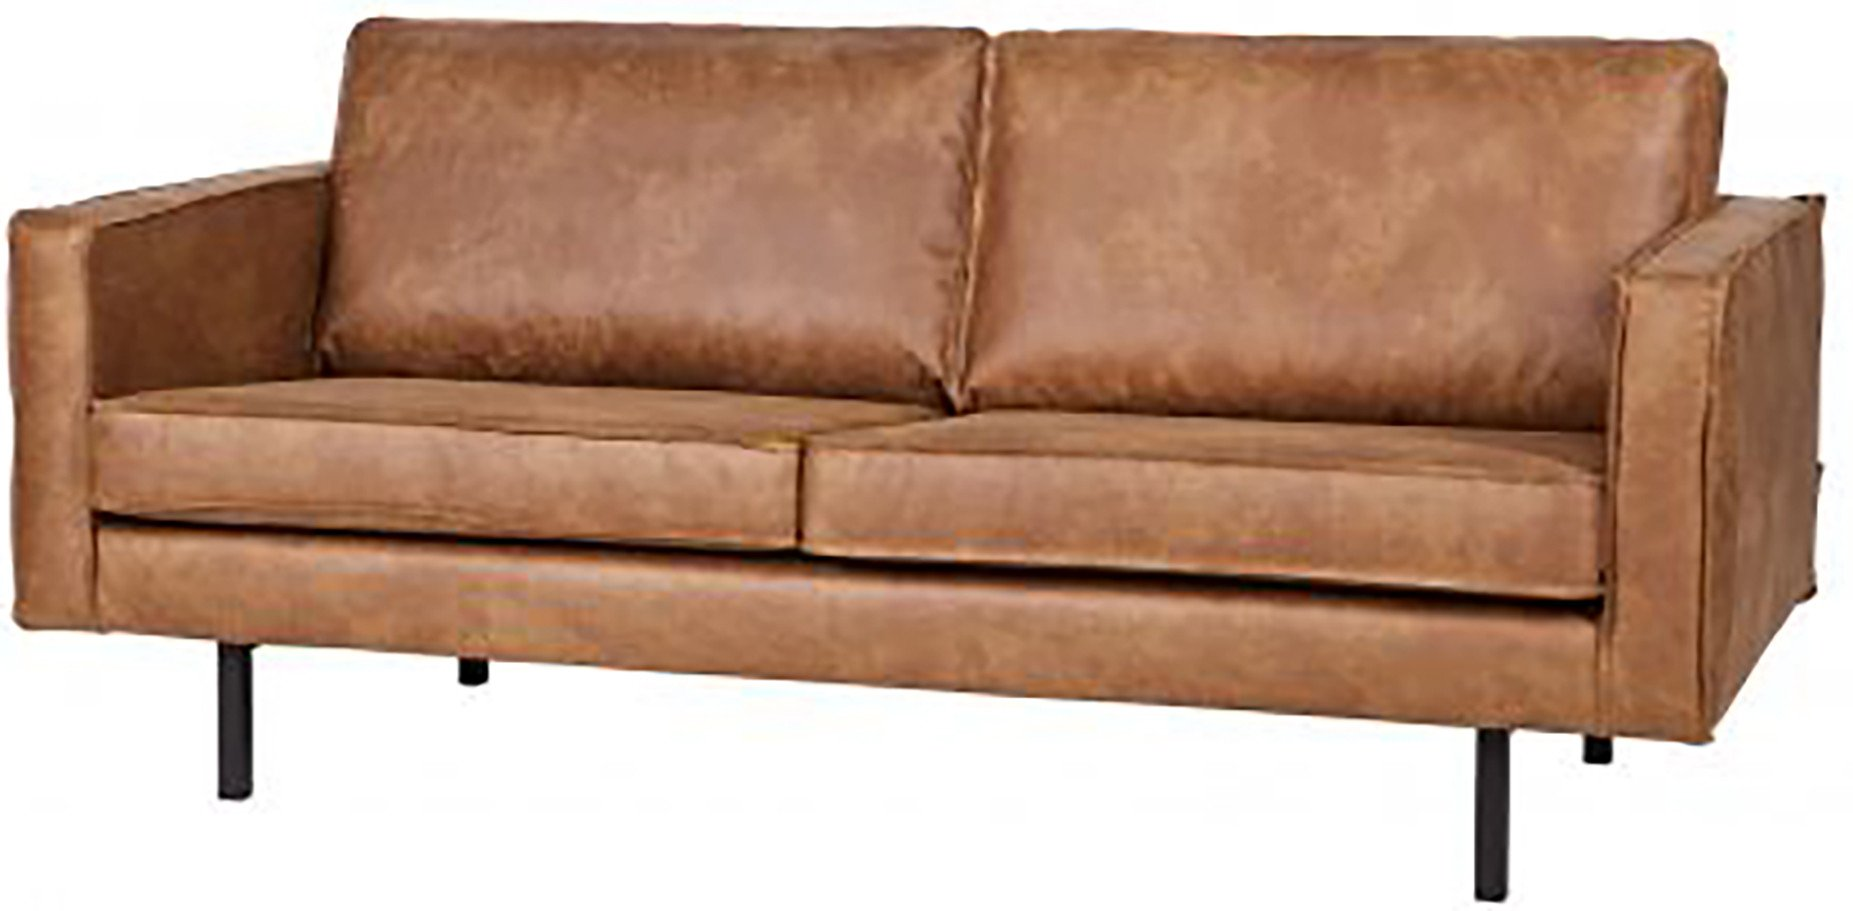 Brown Rodeo Sofa, Be Pure